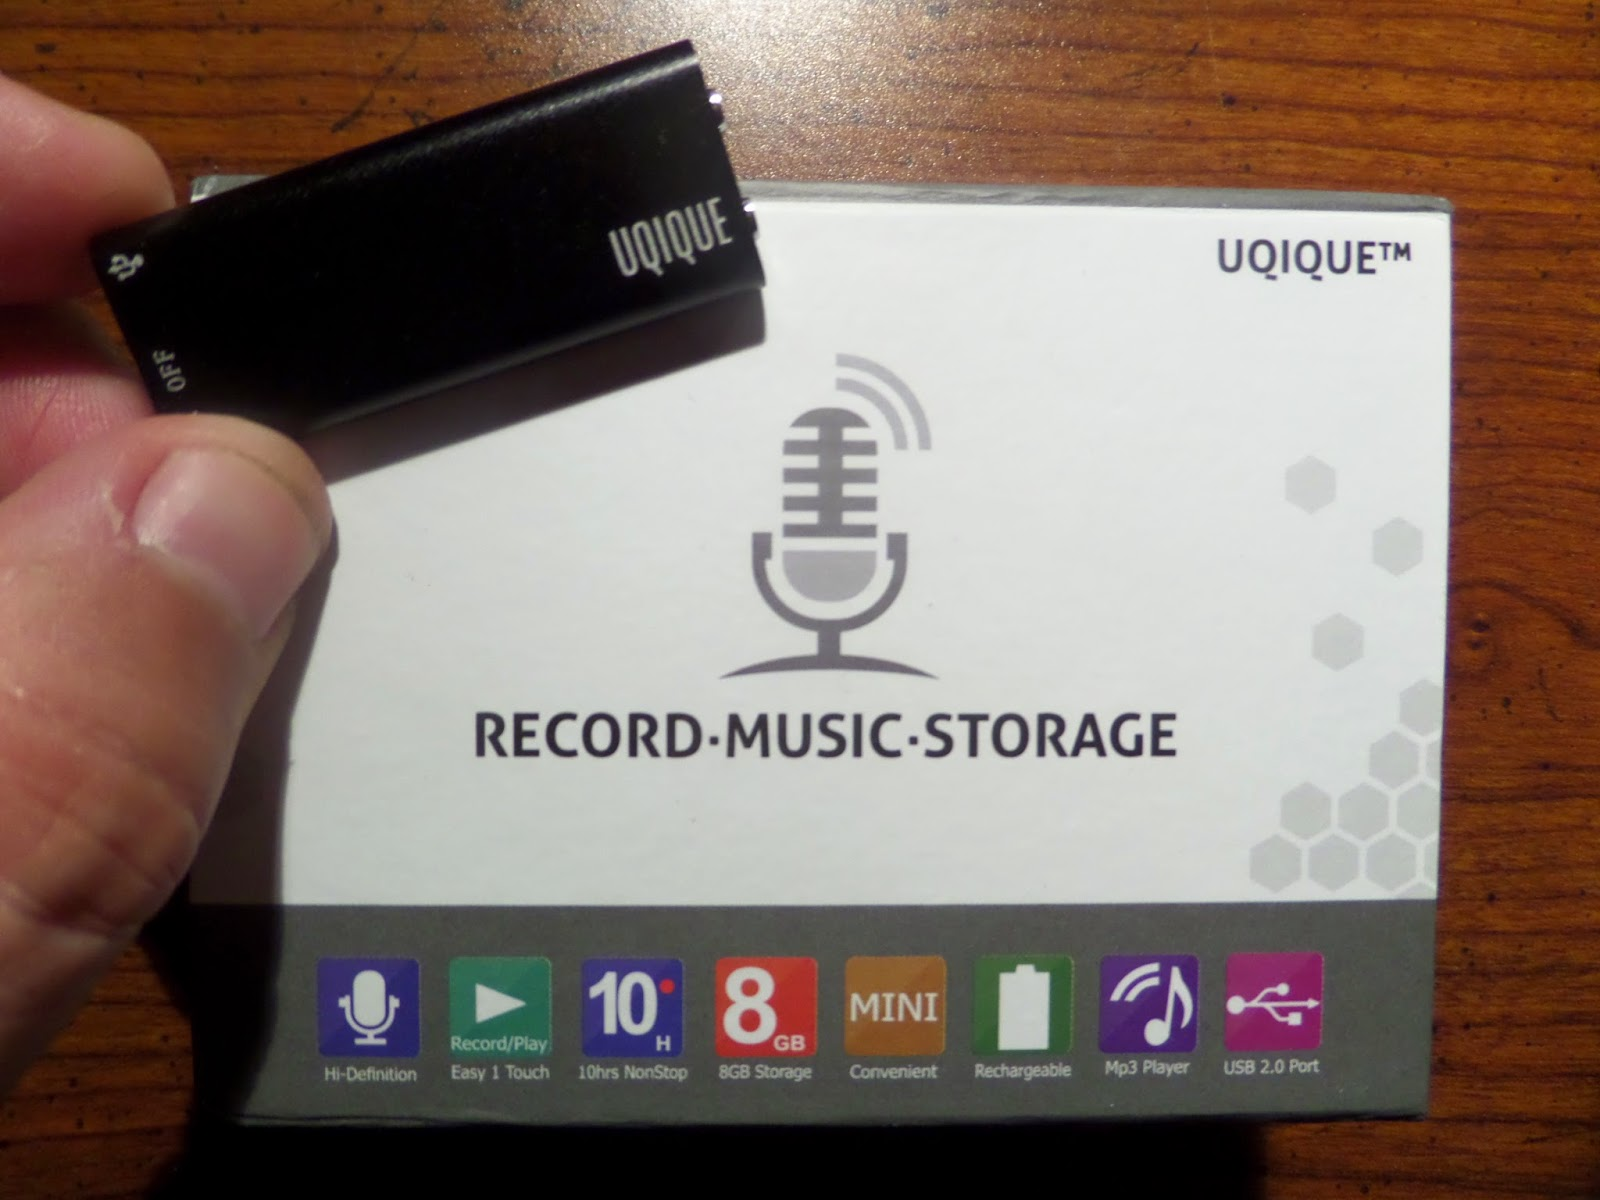 Uqique Mini Digital Voice Recorder